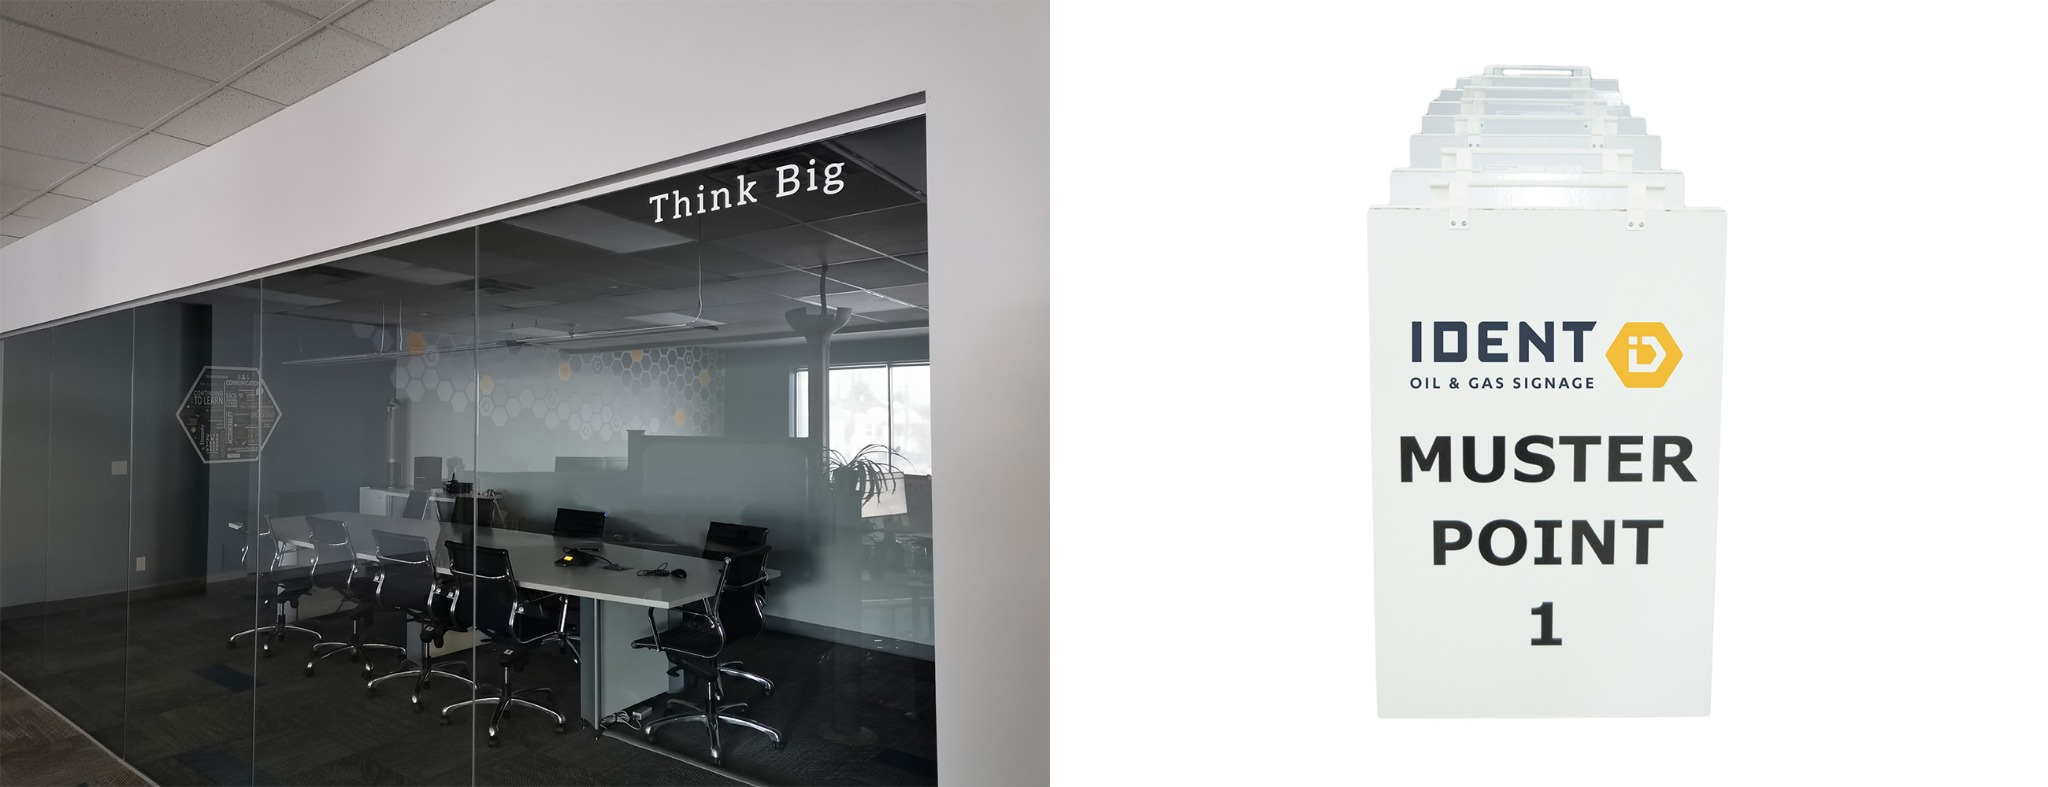 Think Big Meeting Room Decal & Muster Point Sandwhich Board